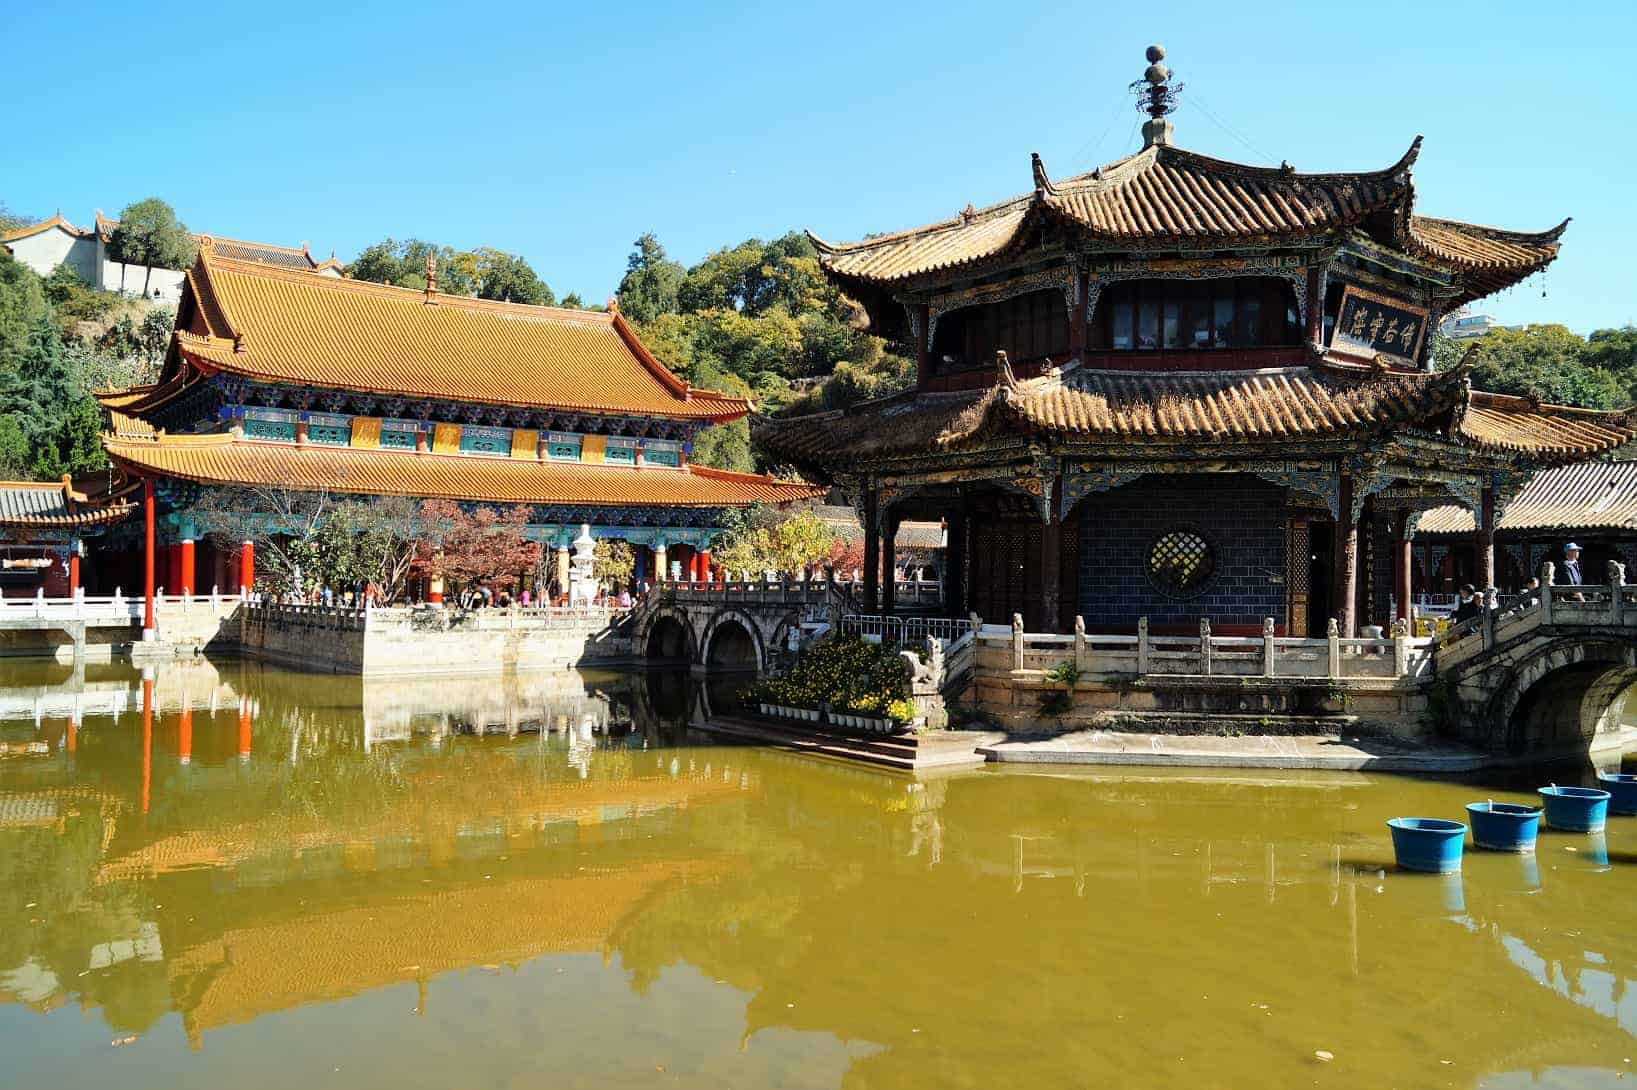 Kunming Yuantong Temple - Organized trip to Yunnan: 12 days in China with driver and guide